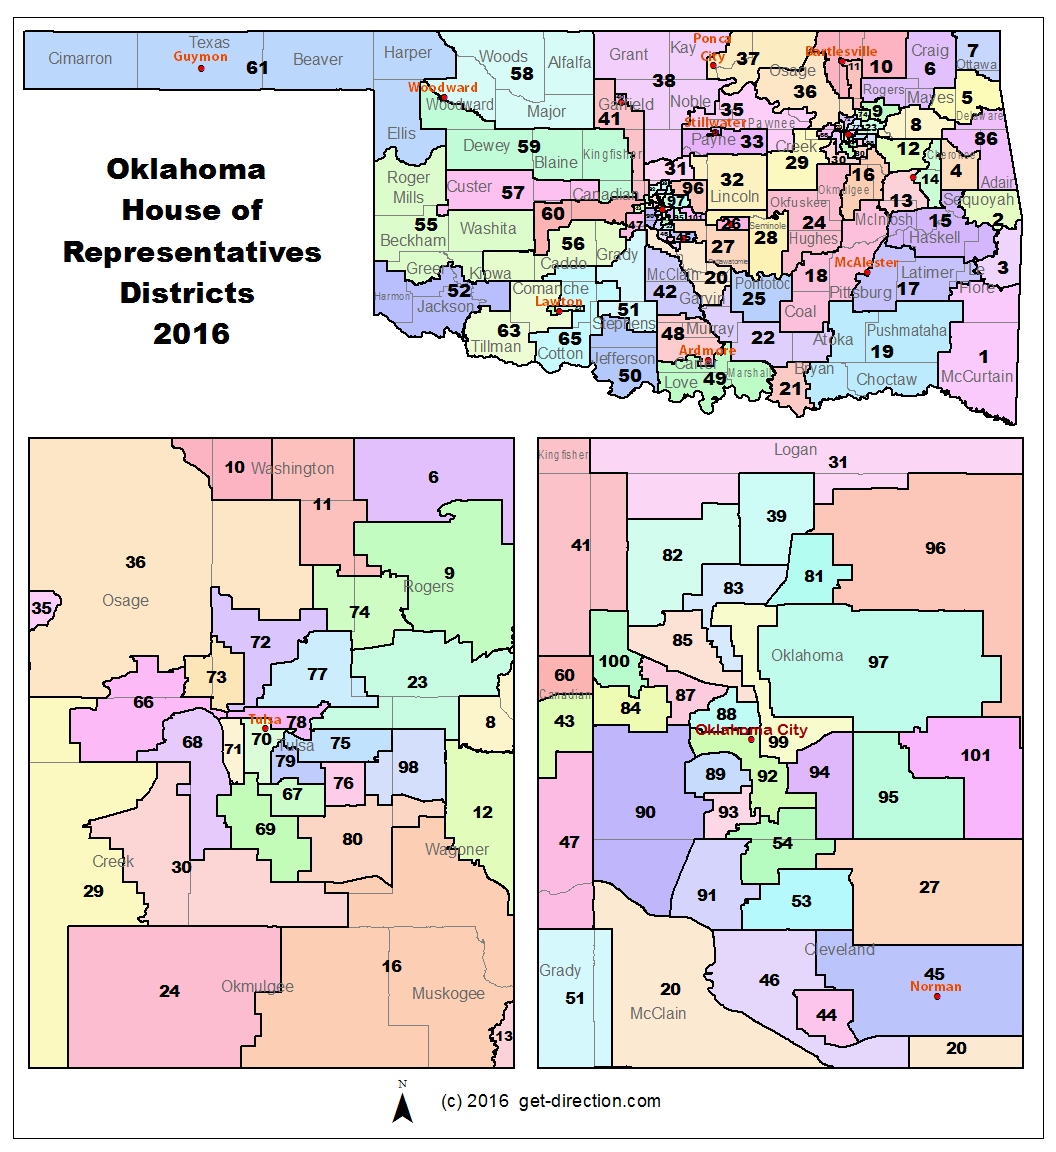 oklahoma-house-of-representatives-districts-2016.png